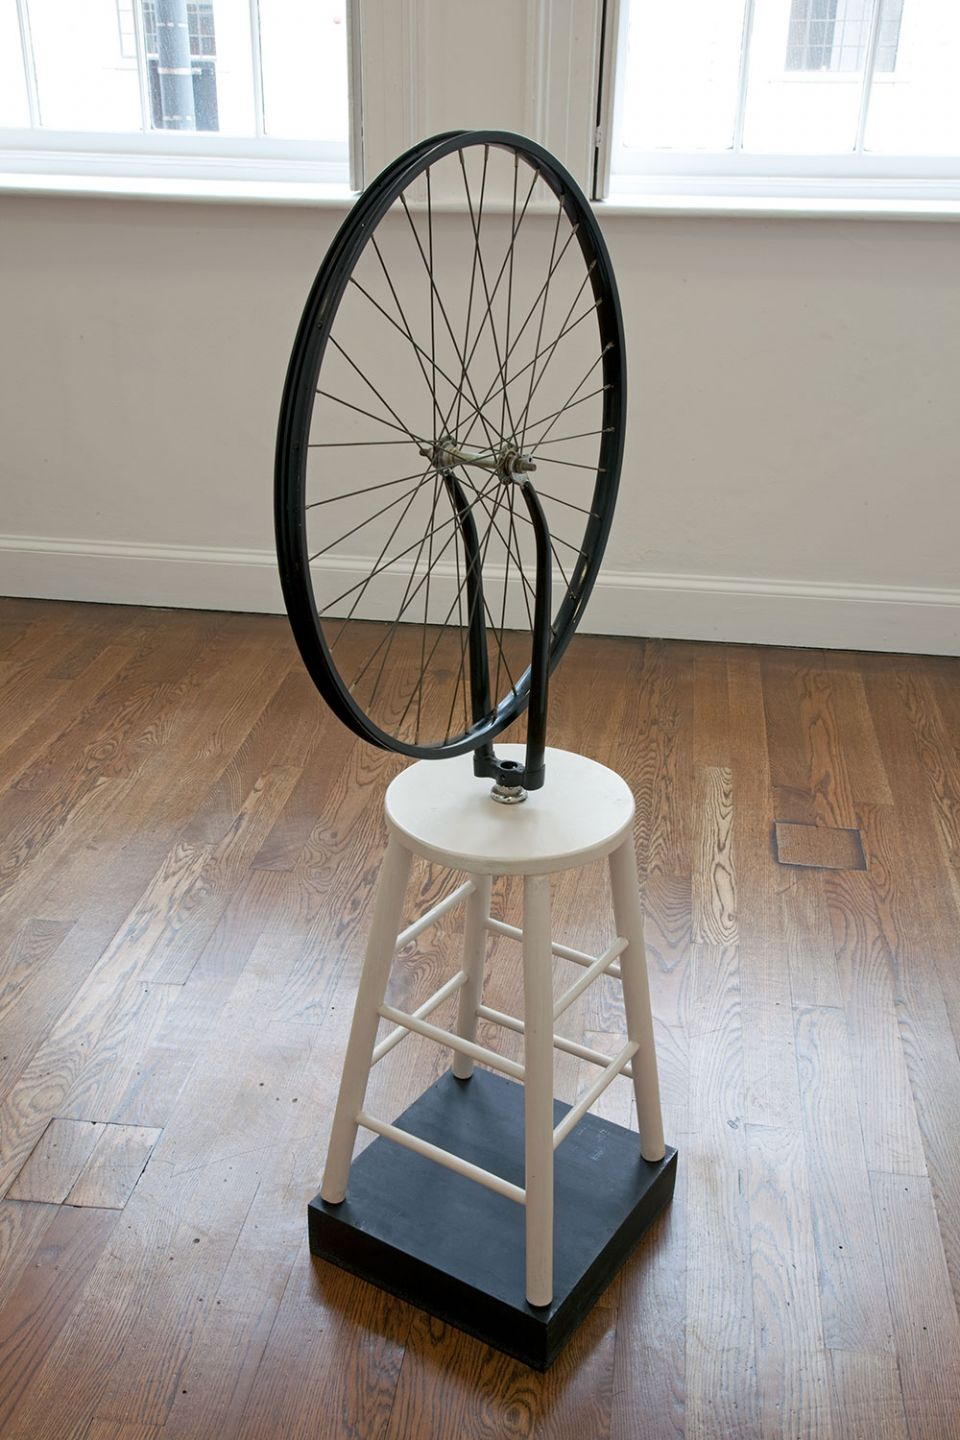 Sturtevant, 'Duchamp Bicycle Wheel' (1969-1973, bicycle wheel on wooden stool)